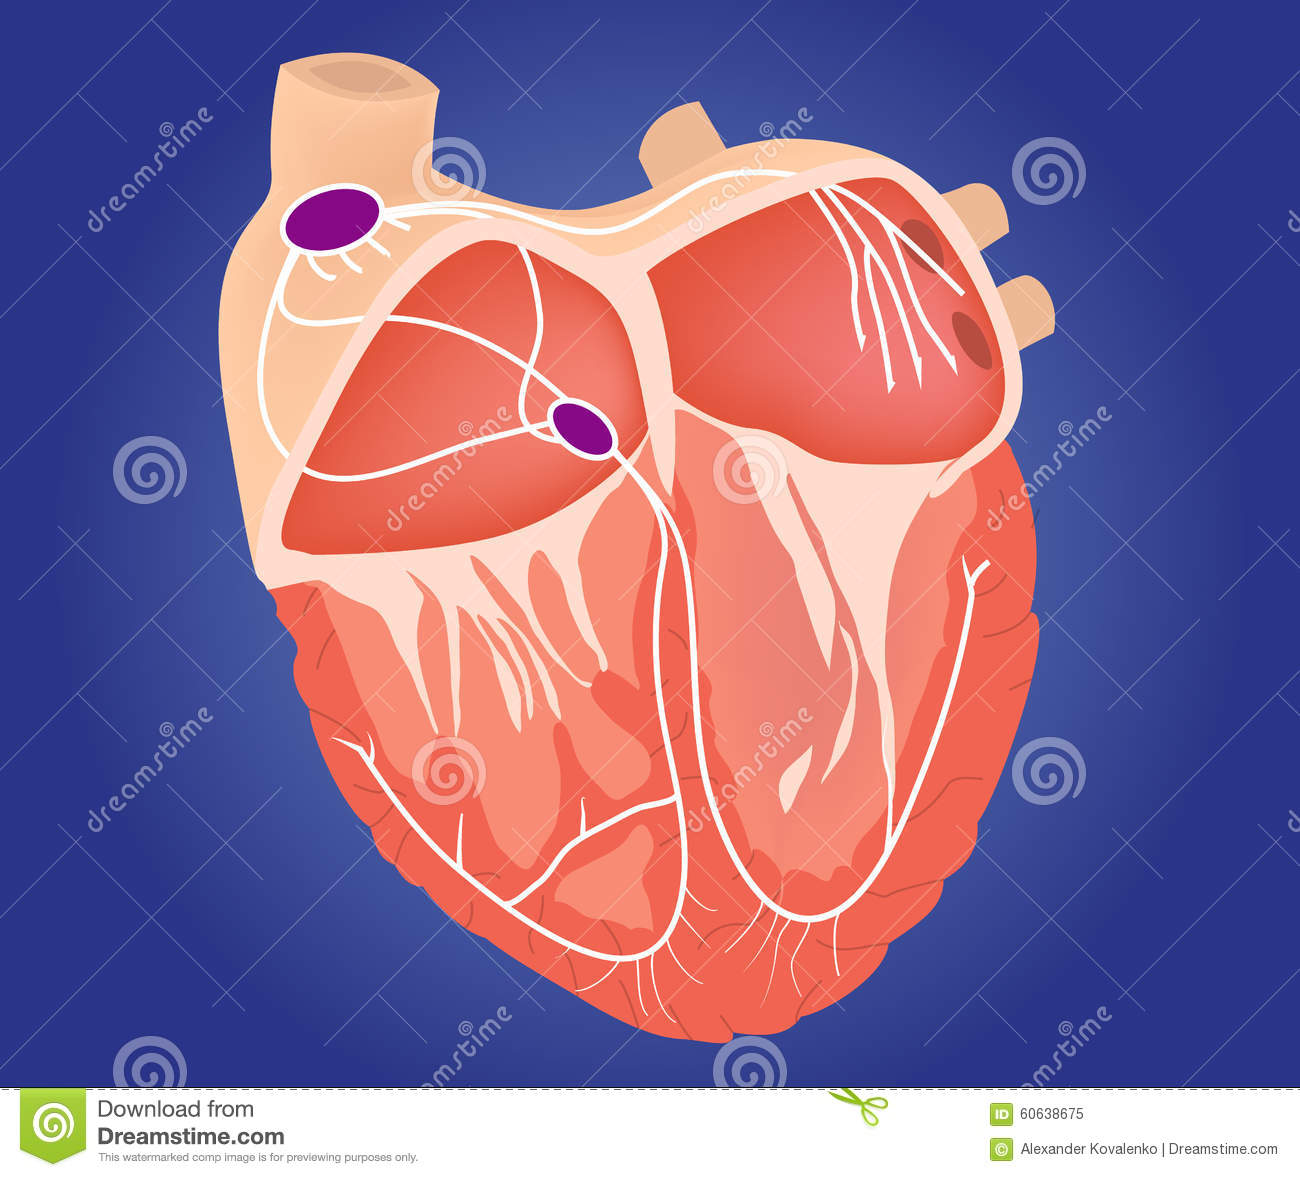 cardiac conduction system diagram jl w7 13 5 wiring cartoons illustrations and vector stock images